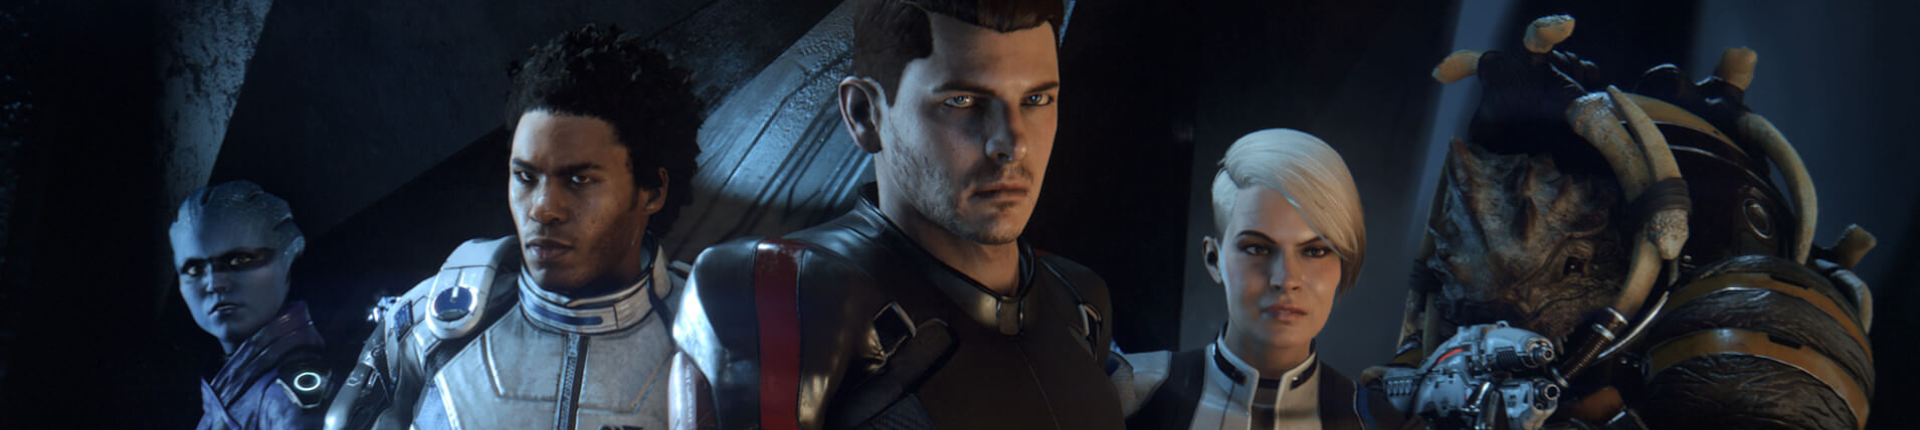 Mass Effect: Andromeda Patch Notes 1.09 (7/7/17)